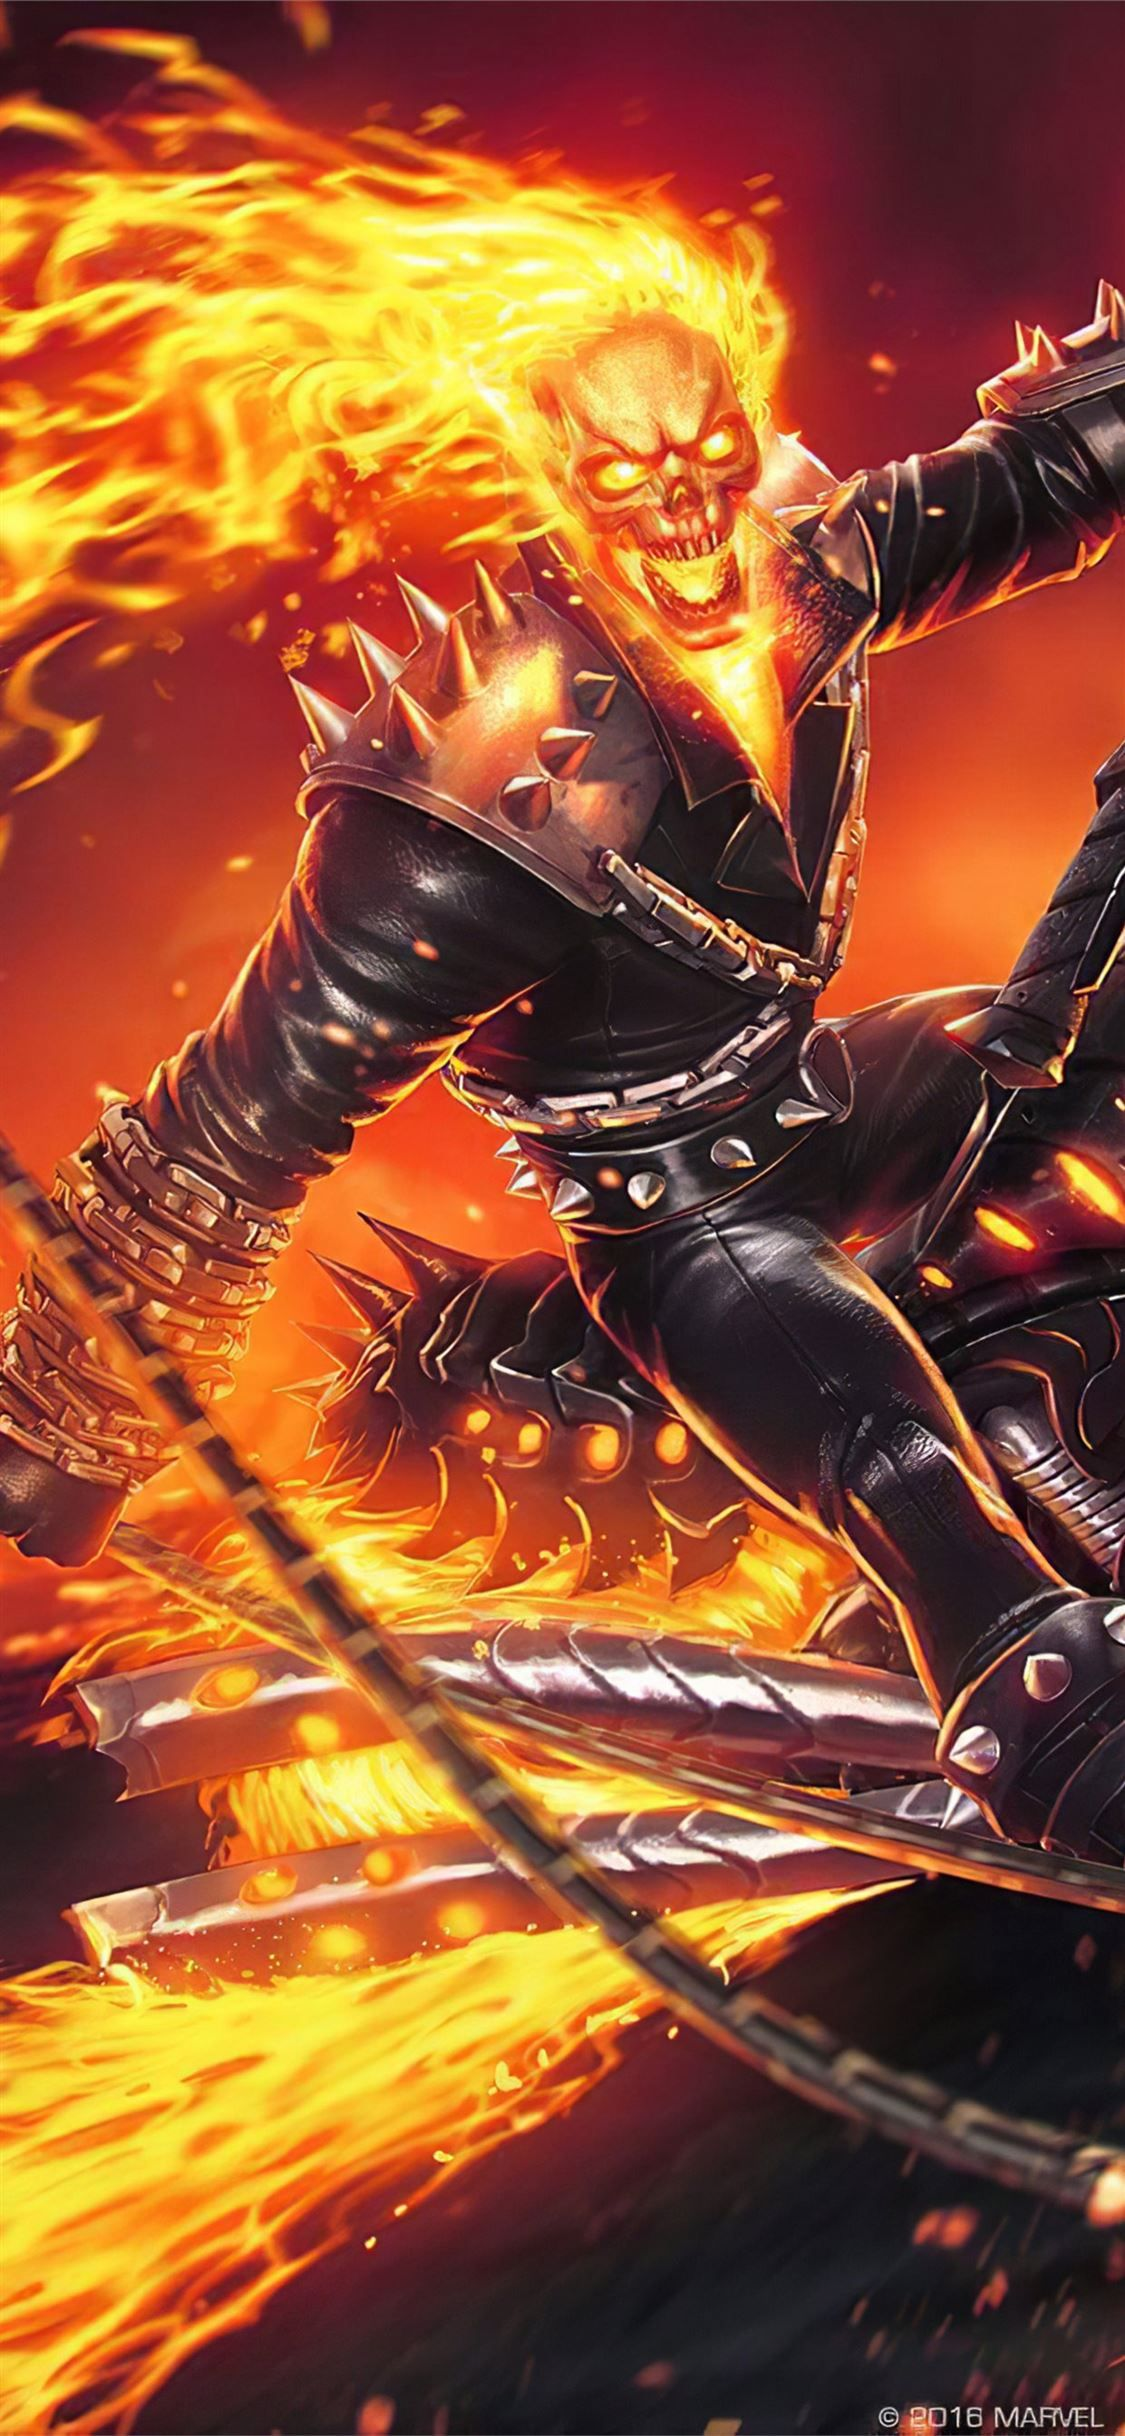 4k Ghost Rider Contest Of Champions Marvelcontestofchampions Ghostrider Superheroes Games Ma Ghost Rider Wallpaper Ghost Rider Pictures Ghost Rider Marvel